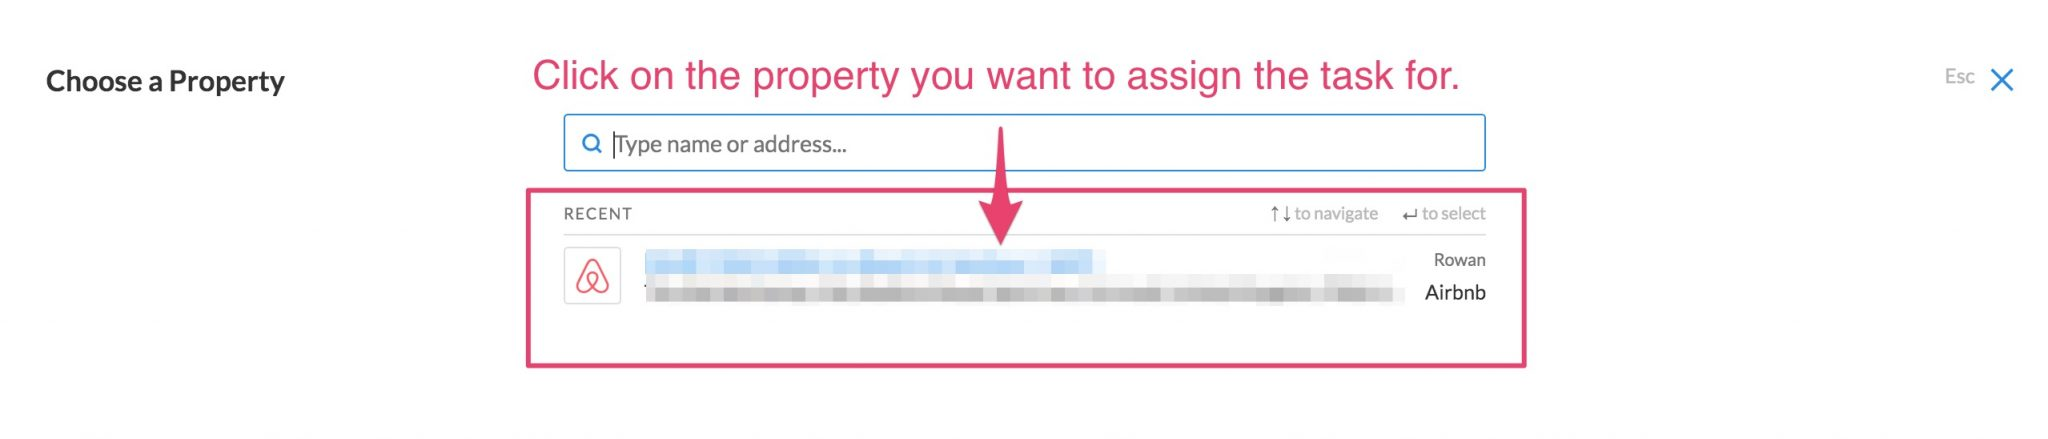 assign task to a property IGMS